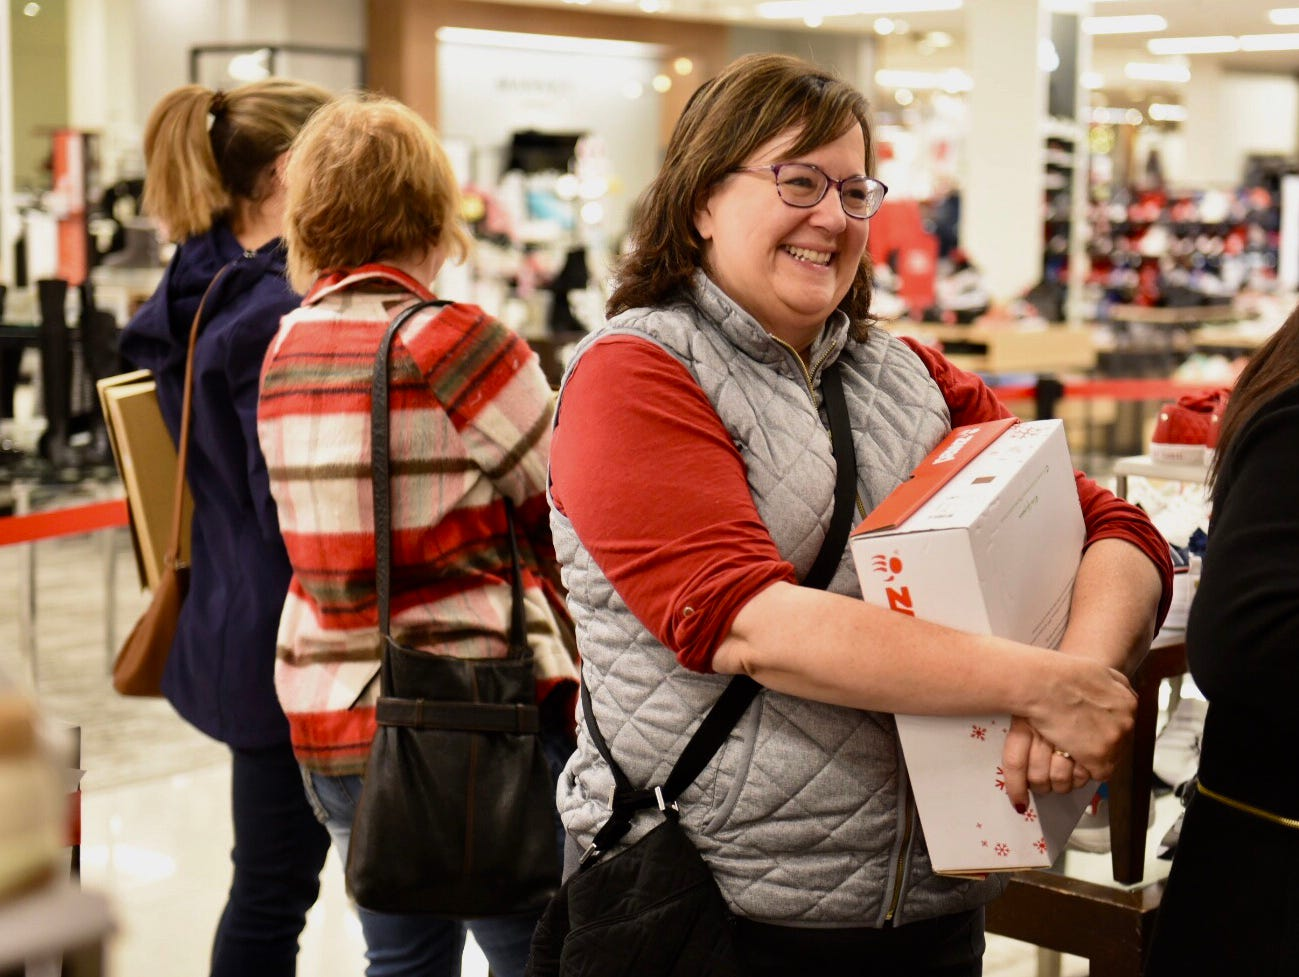 Shelia Breen of Livonia smiles as she waits in line at Macy's on Black Friday for their door buster sales at Twelve Oaks Mall in Novi.